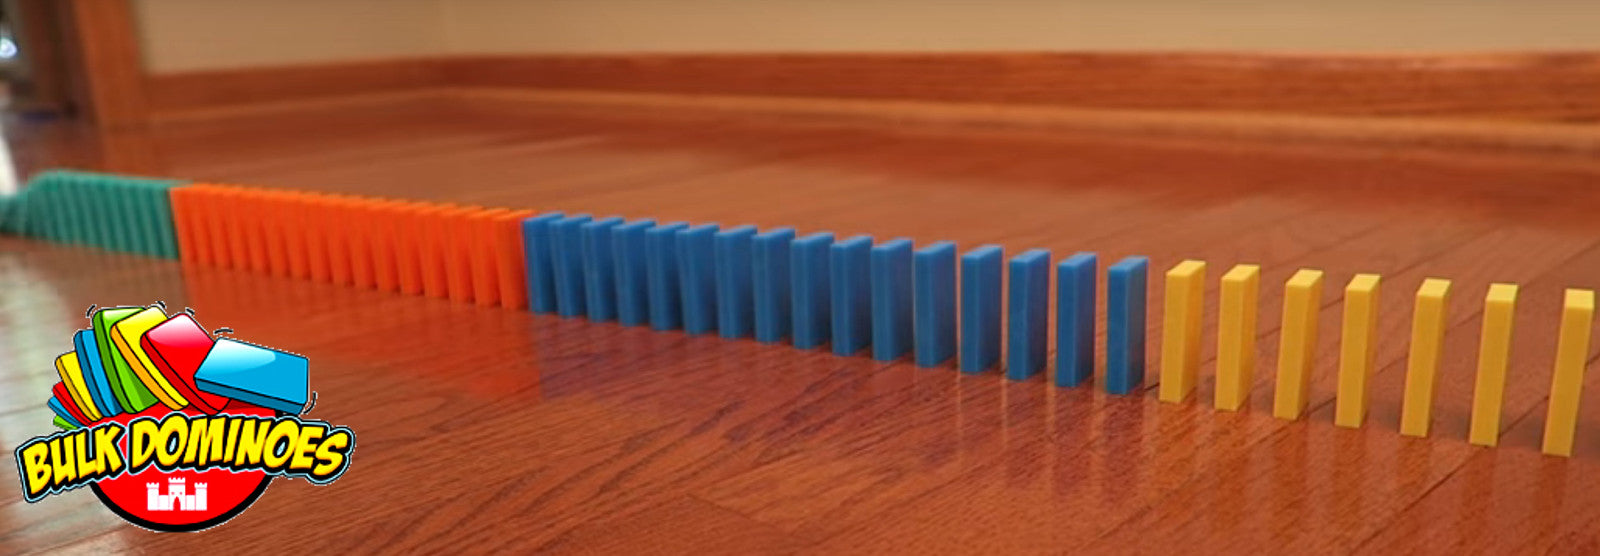 The highest quality stacking and toppling dominoes!